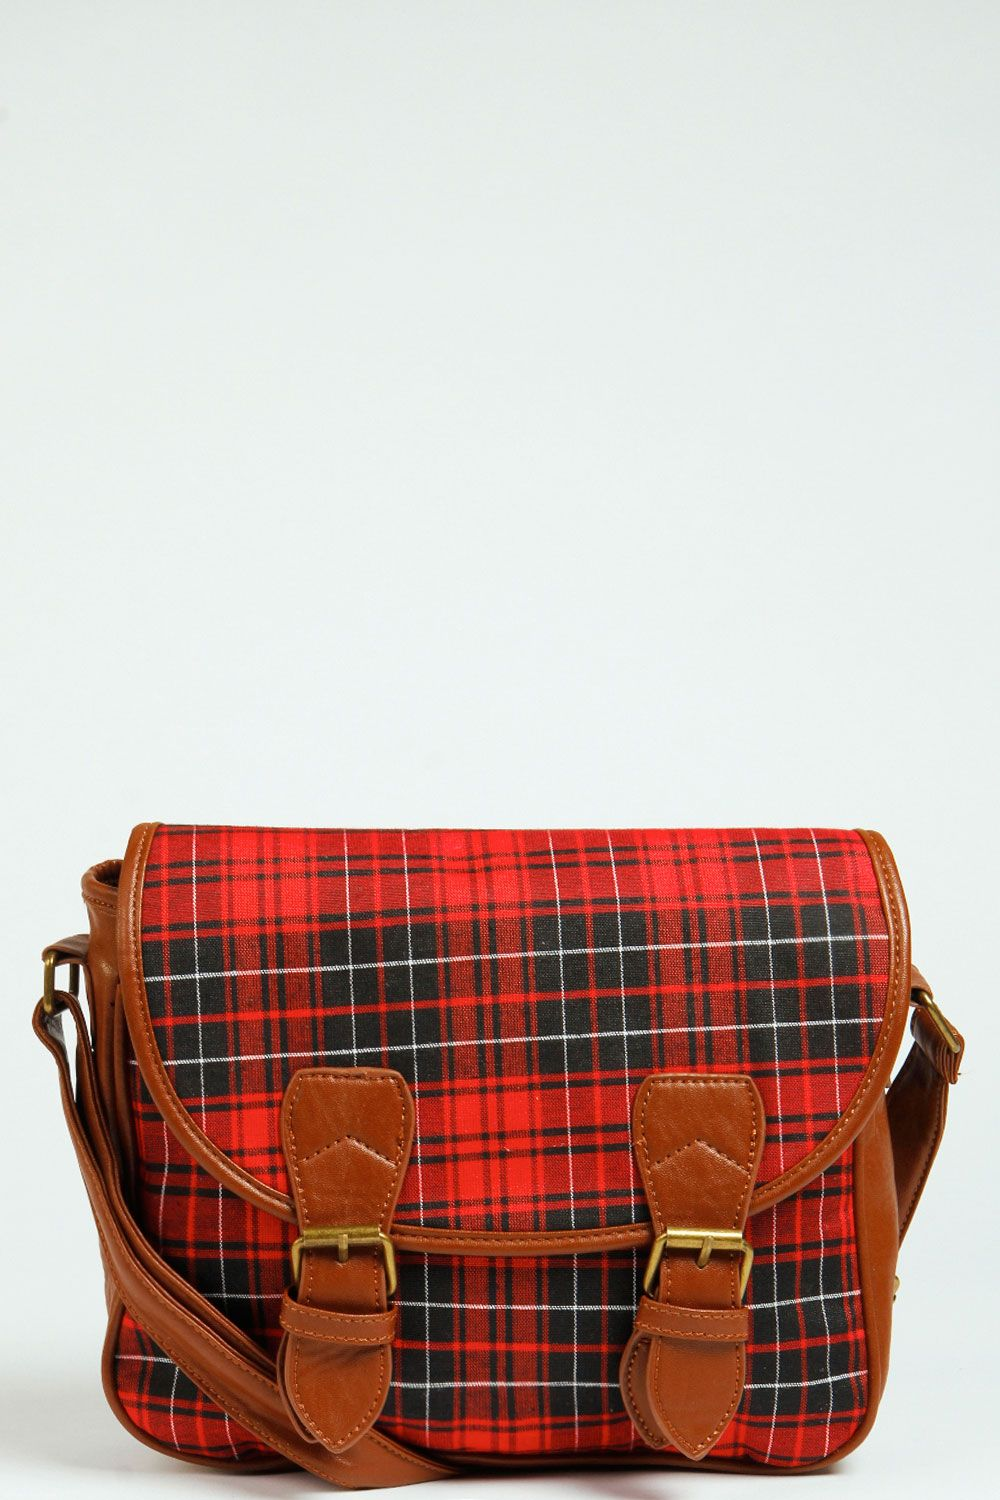 Amelia Tartan Sachel >> http://www.boohoo.com/restofworld/gifts/gifts-for-her/icat/new-in-accessories/amelia-tartan-sachel/invt/azz42051